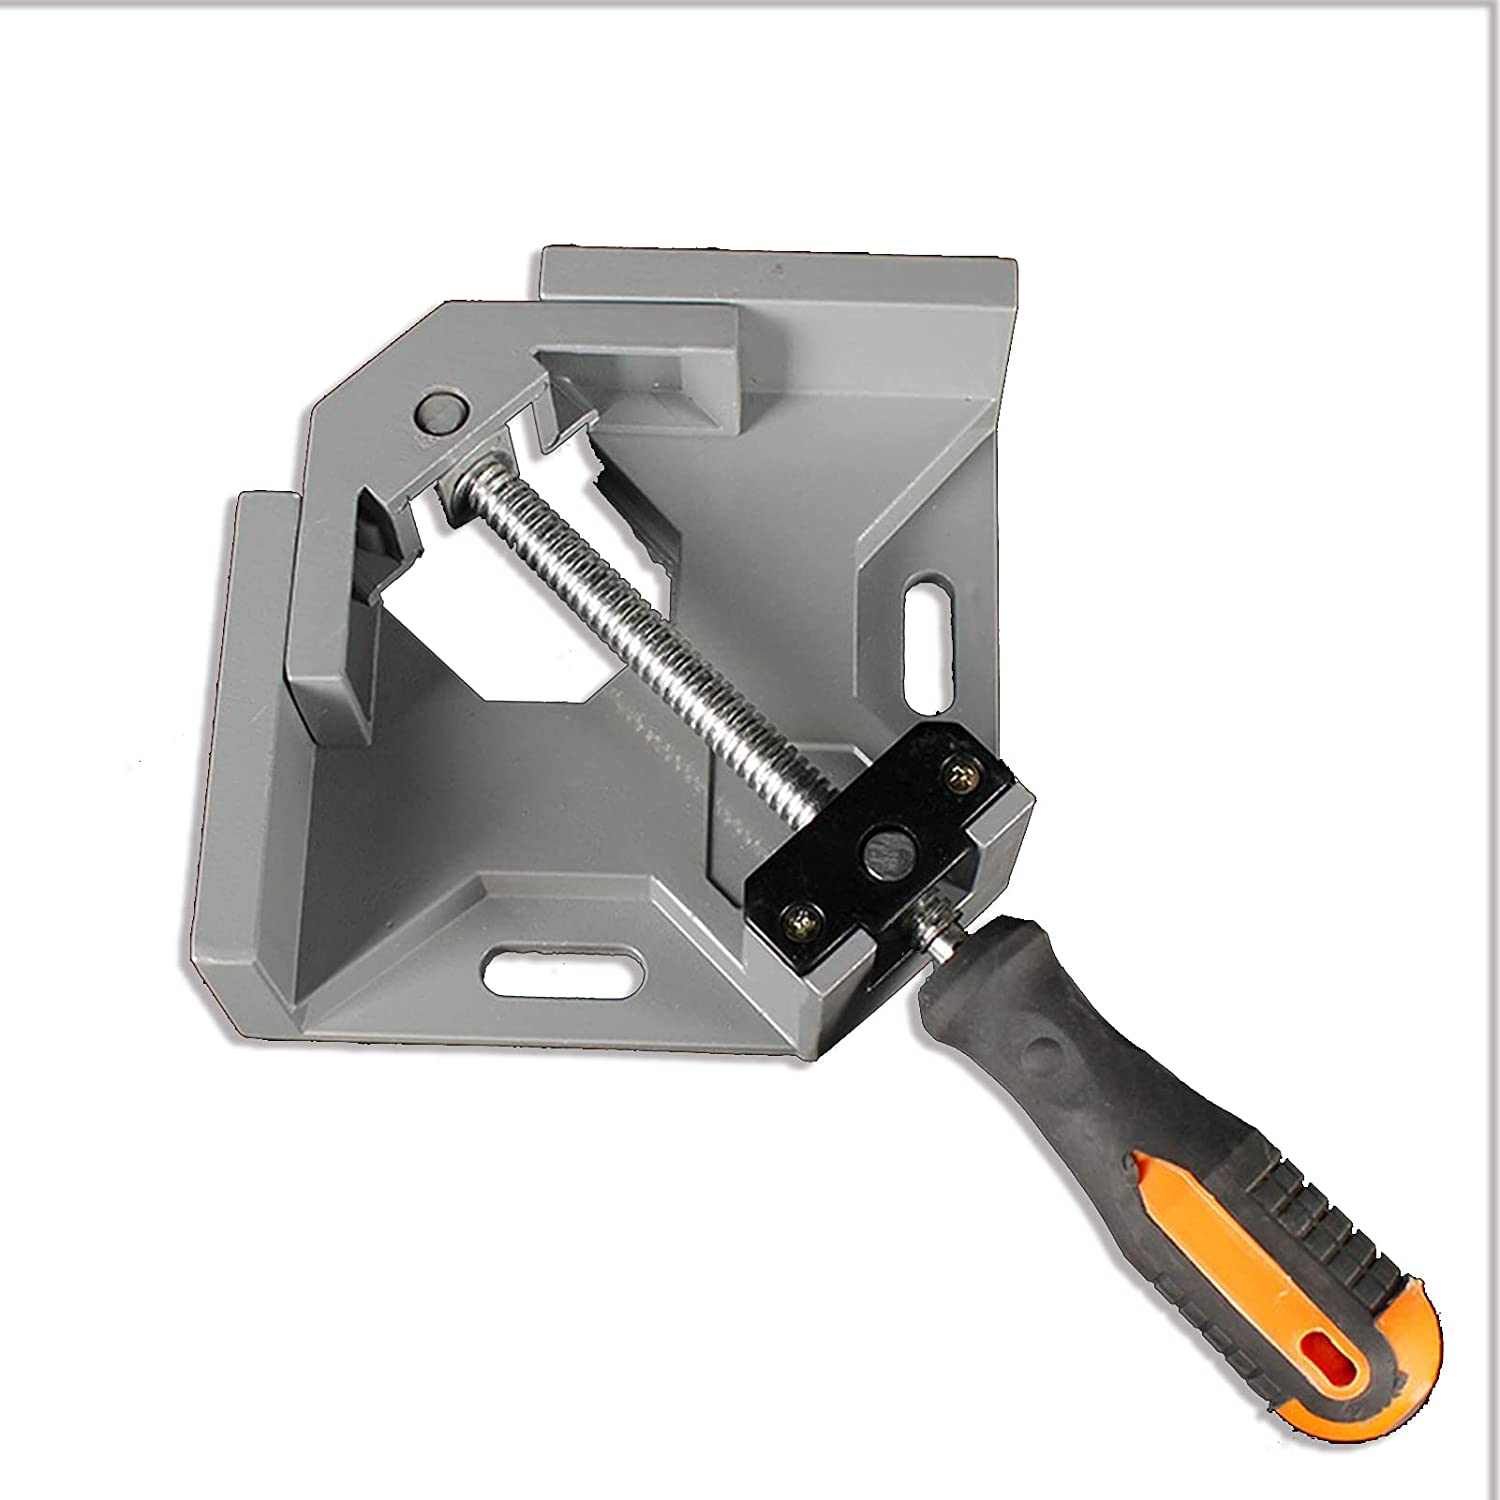 REOUG Single Year-end annual account Handle Right handle Angle Max 90% OFF Clip Alumin